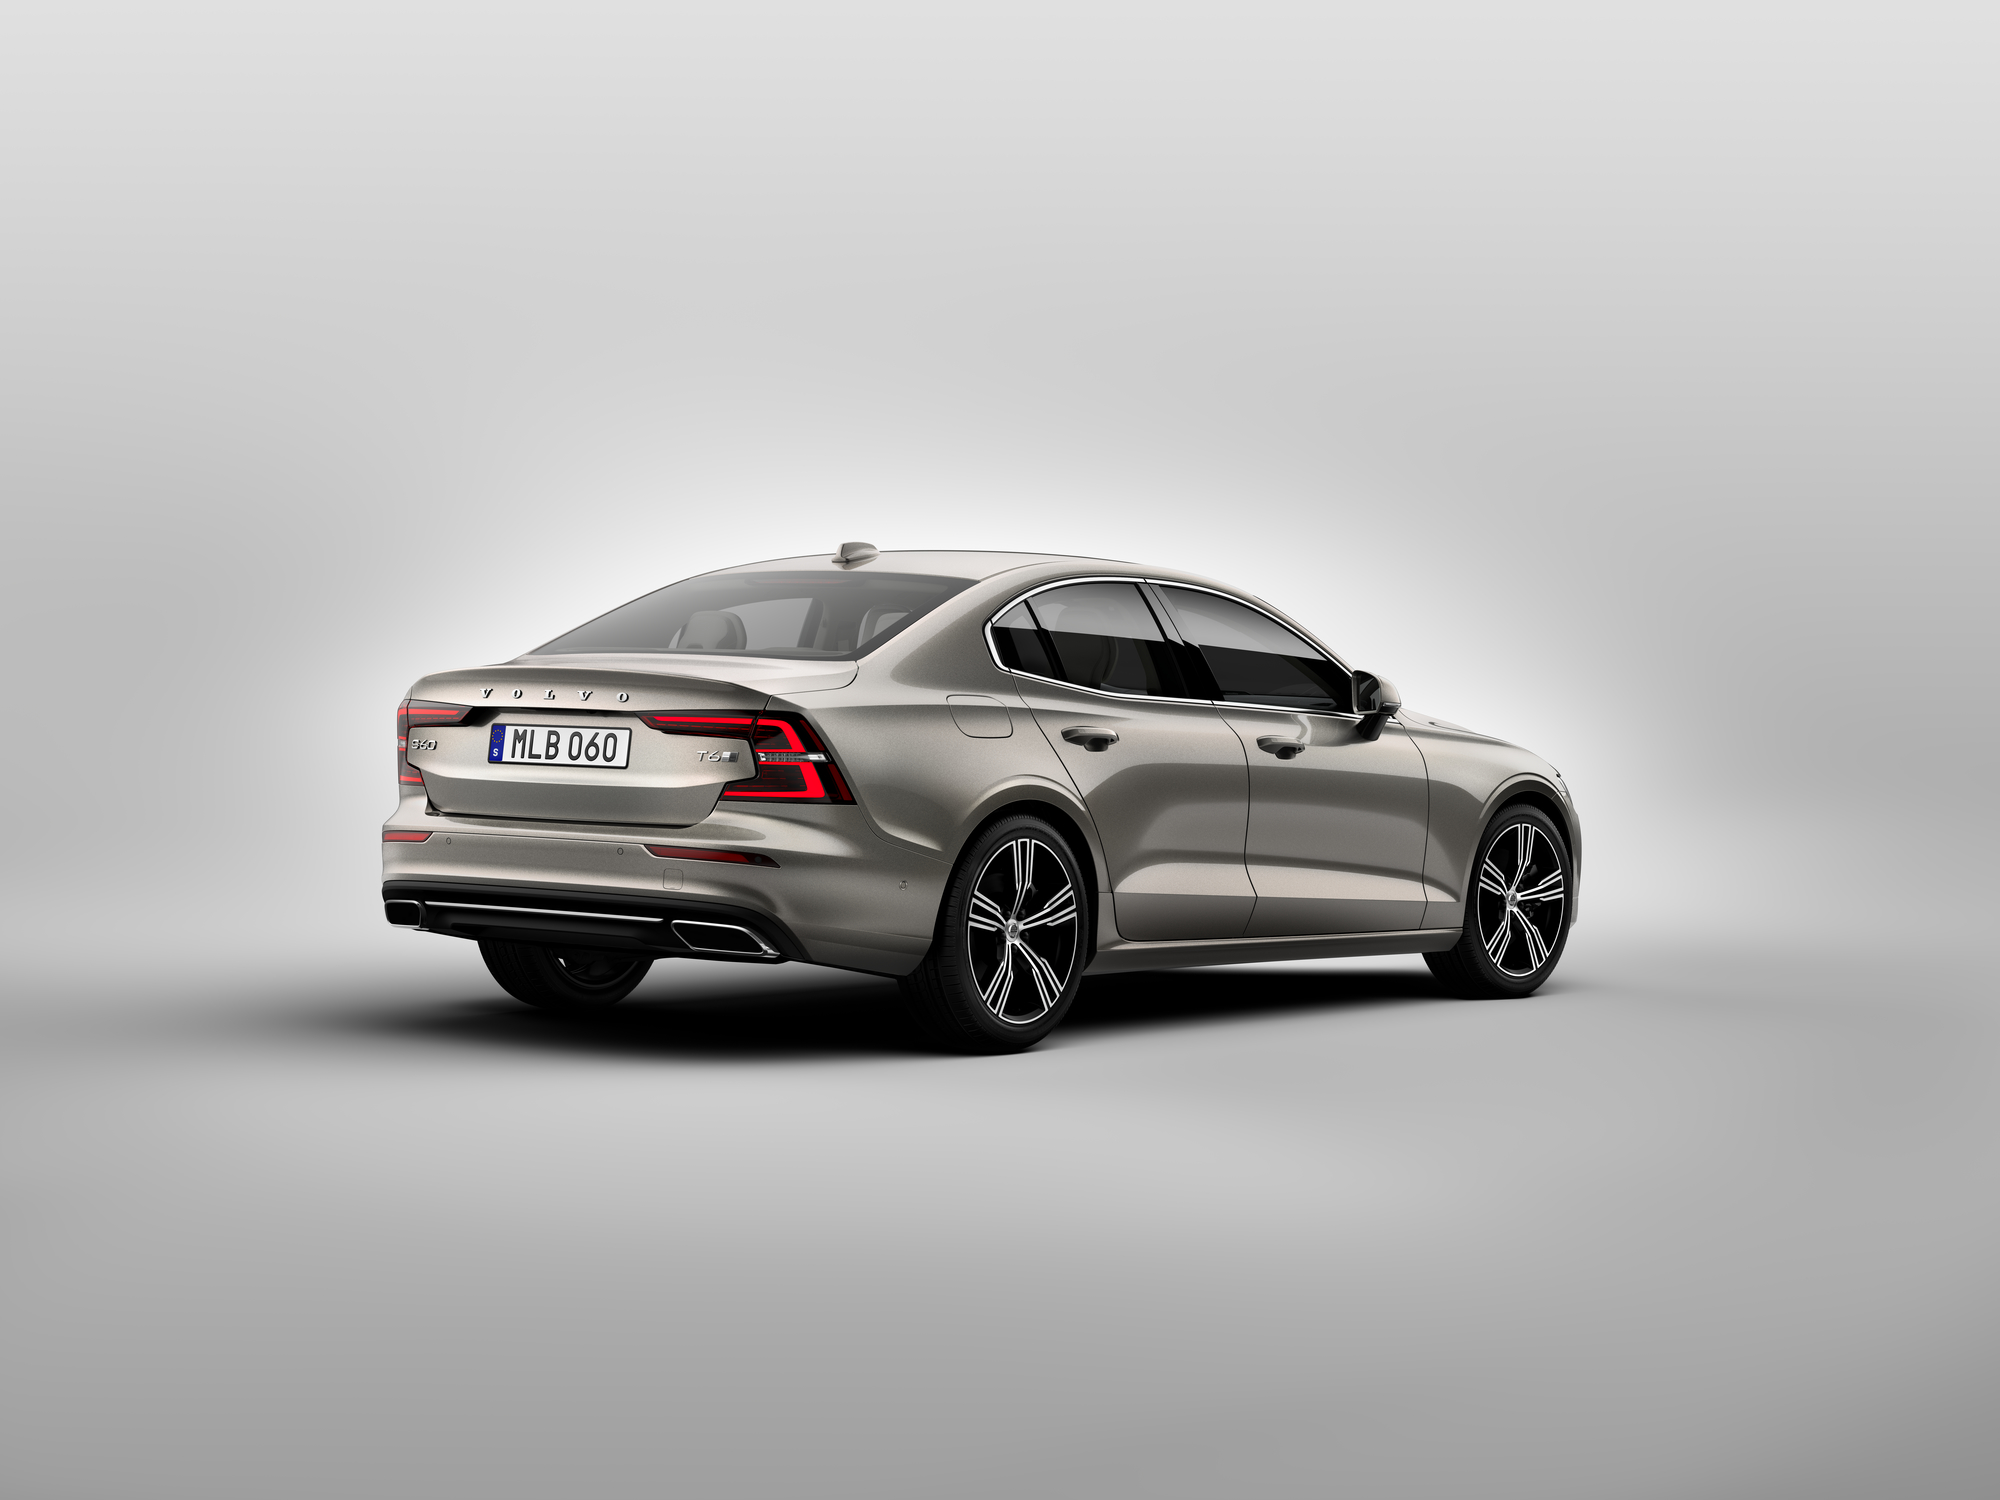 Volvo S60 T5 >> Tehdastilaus Volvo S60 T5 Business Inscription Aut Kayttoauto